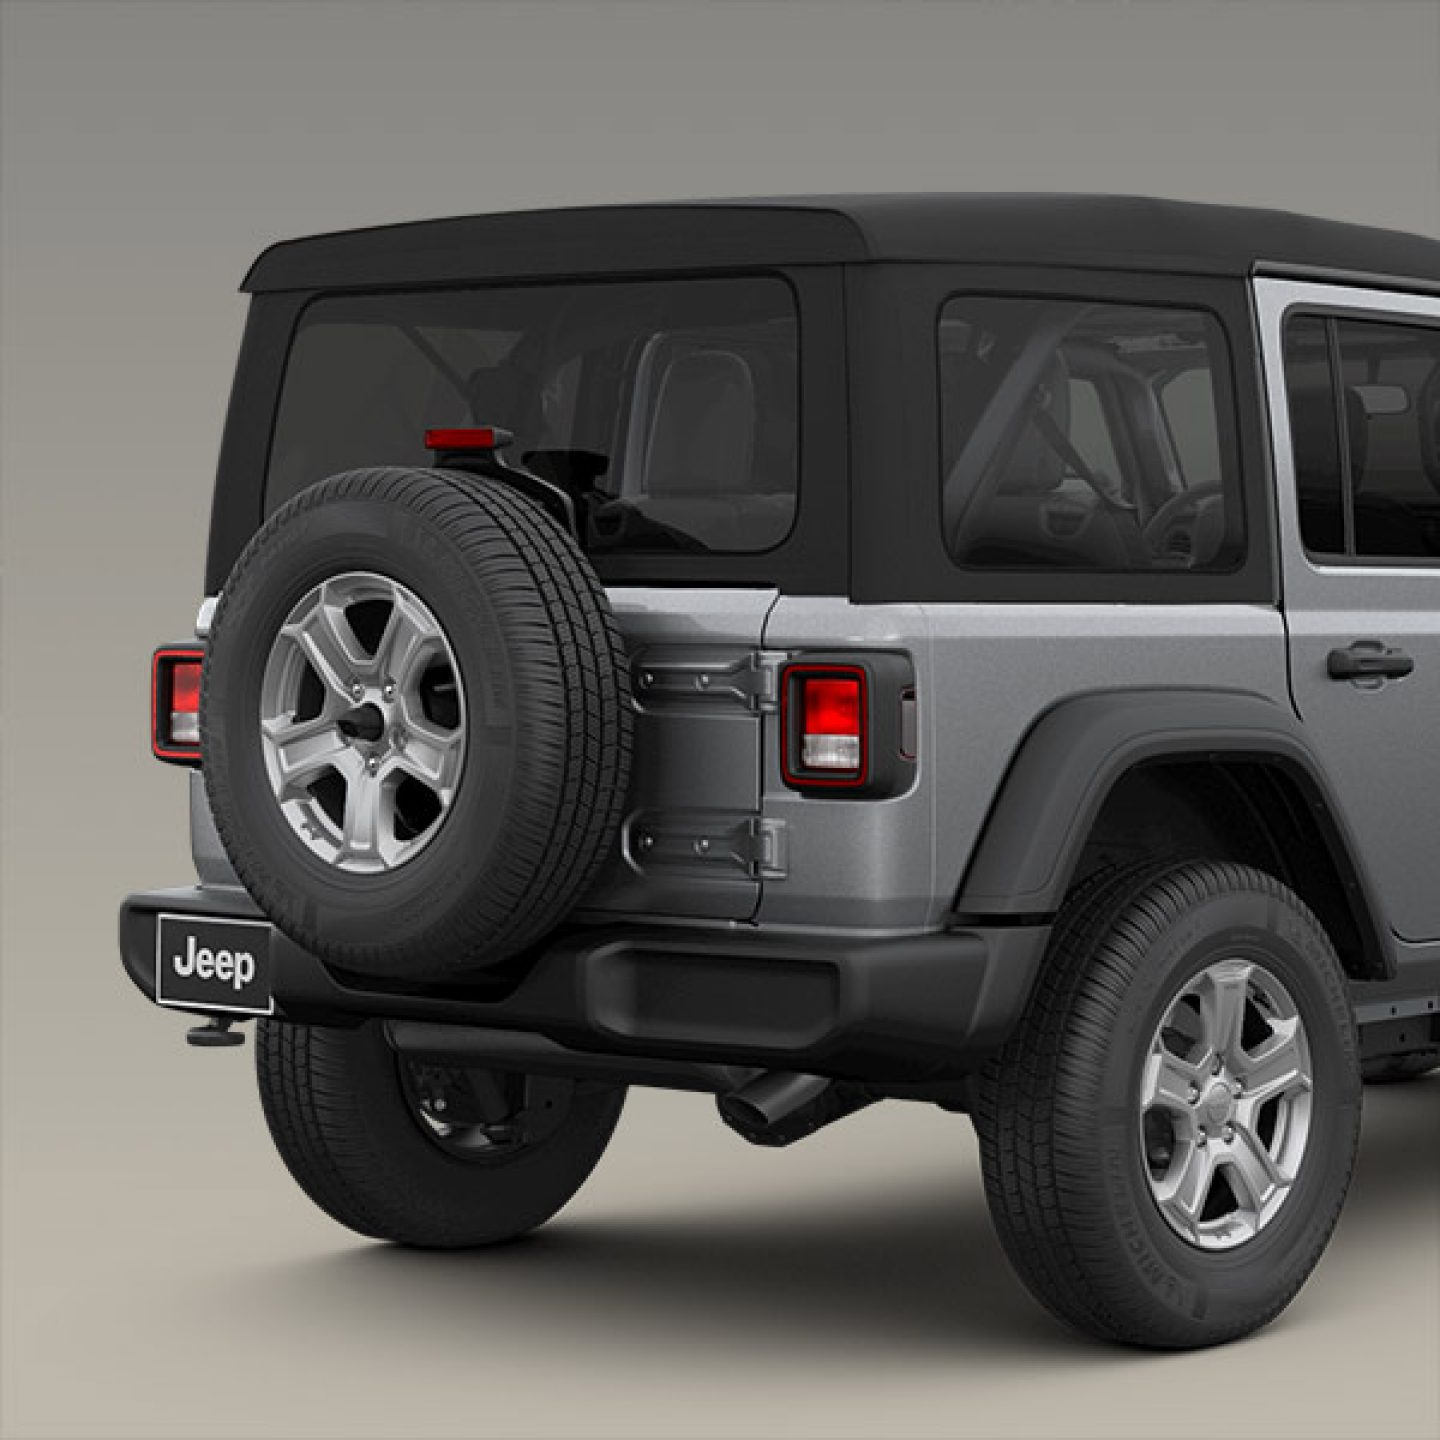 2018 Jeep Wrangler  JL VLP Modelizer Key Features Sport S Zipperless Sunrider Soft Top  2.image.1440